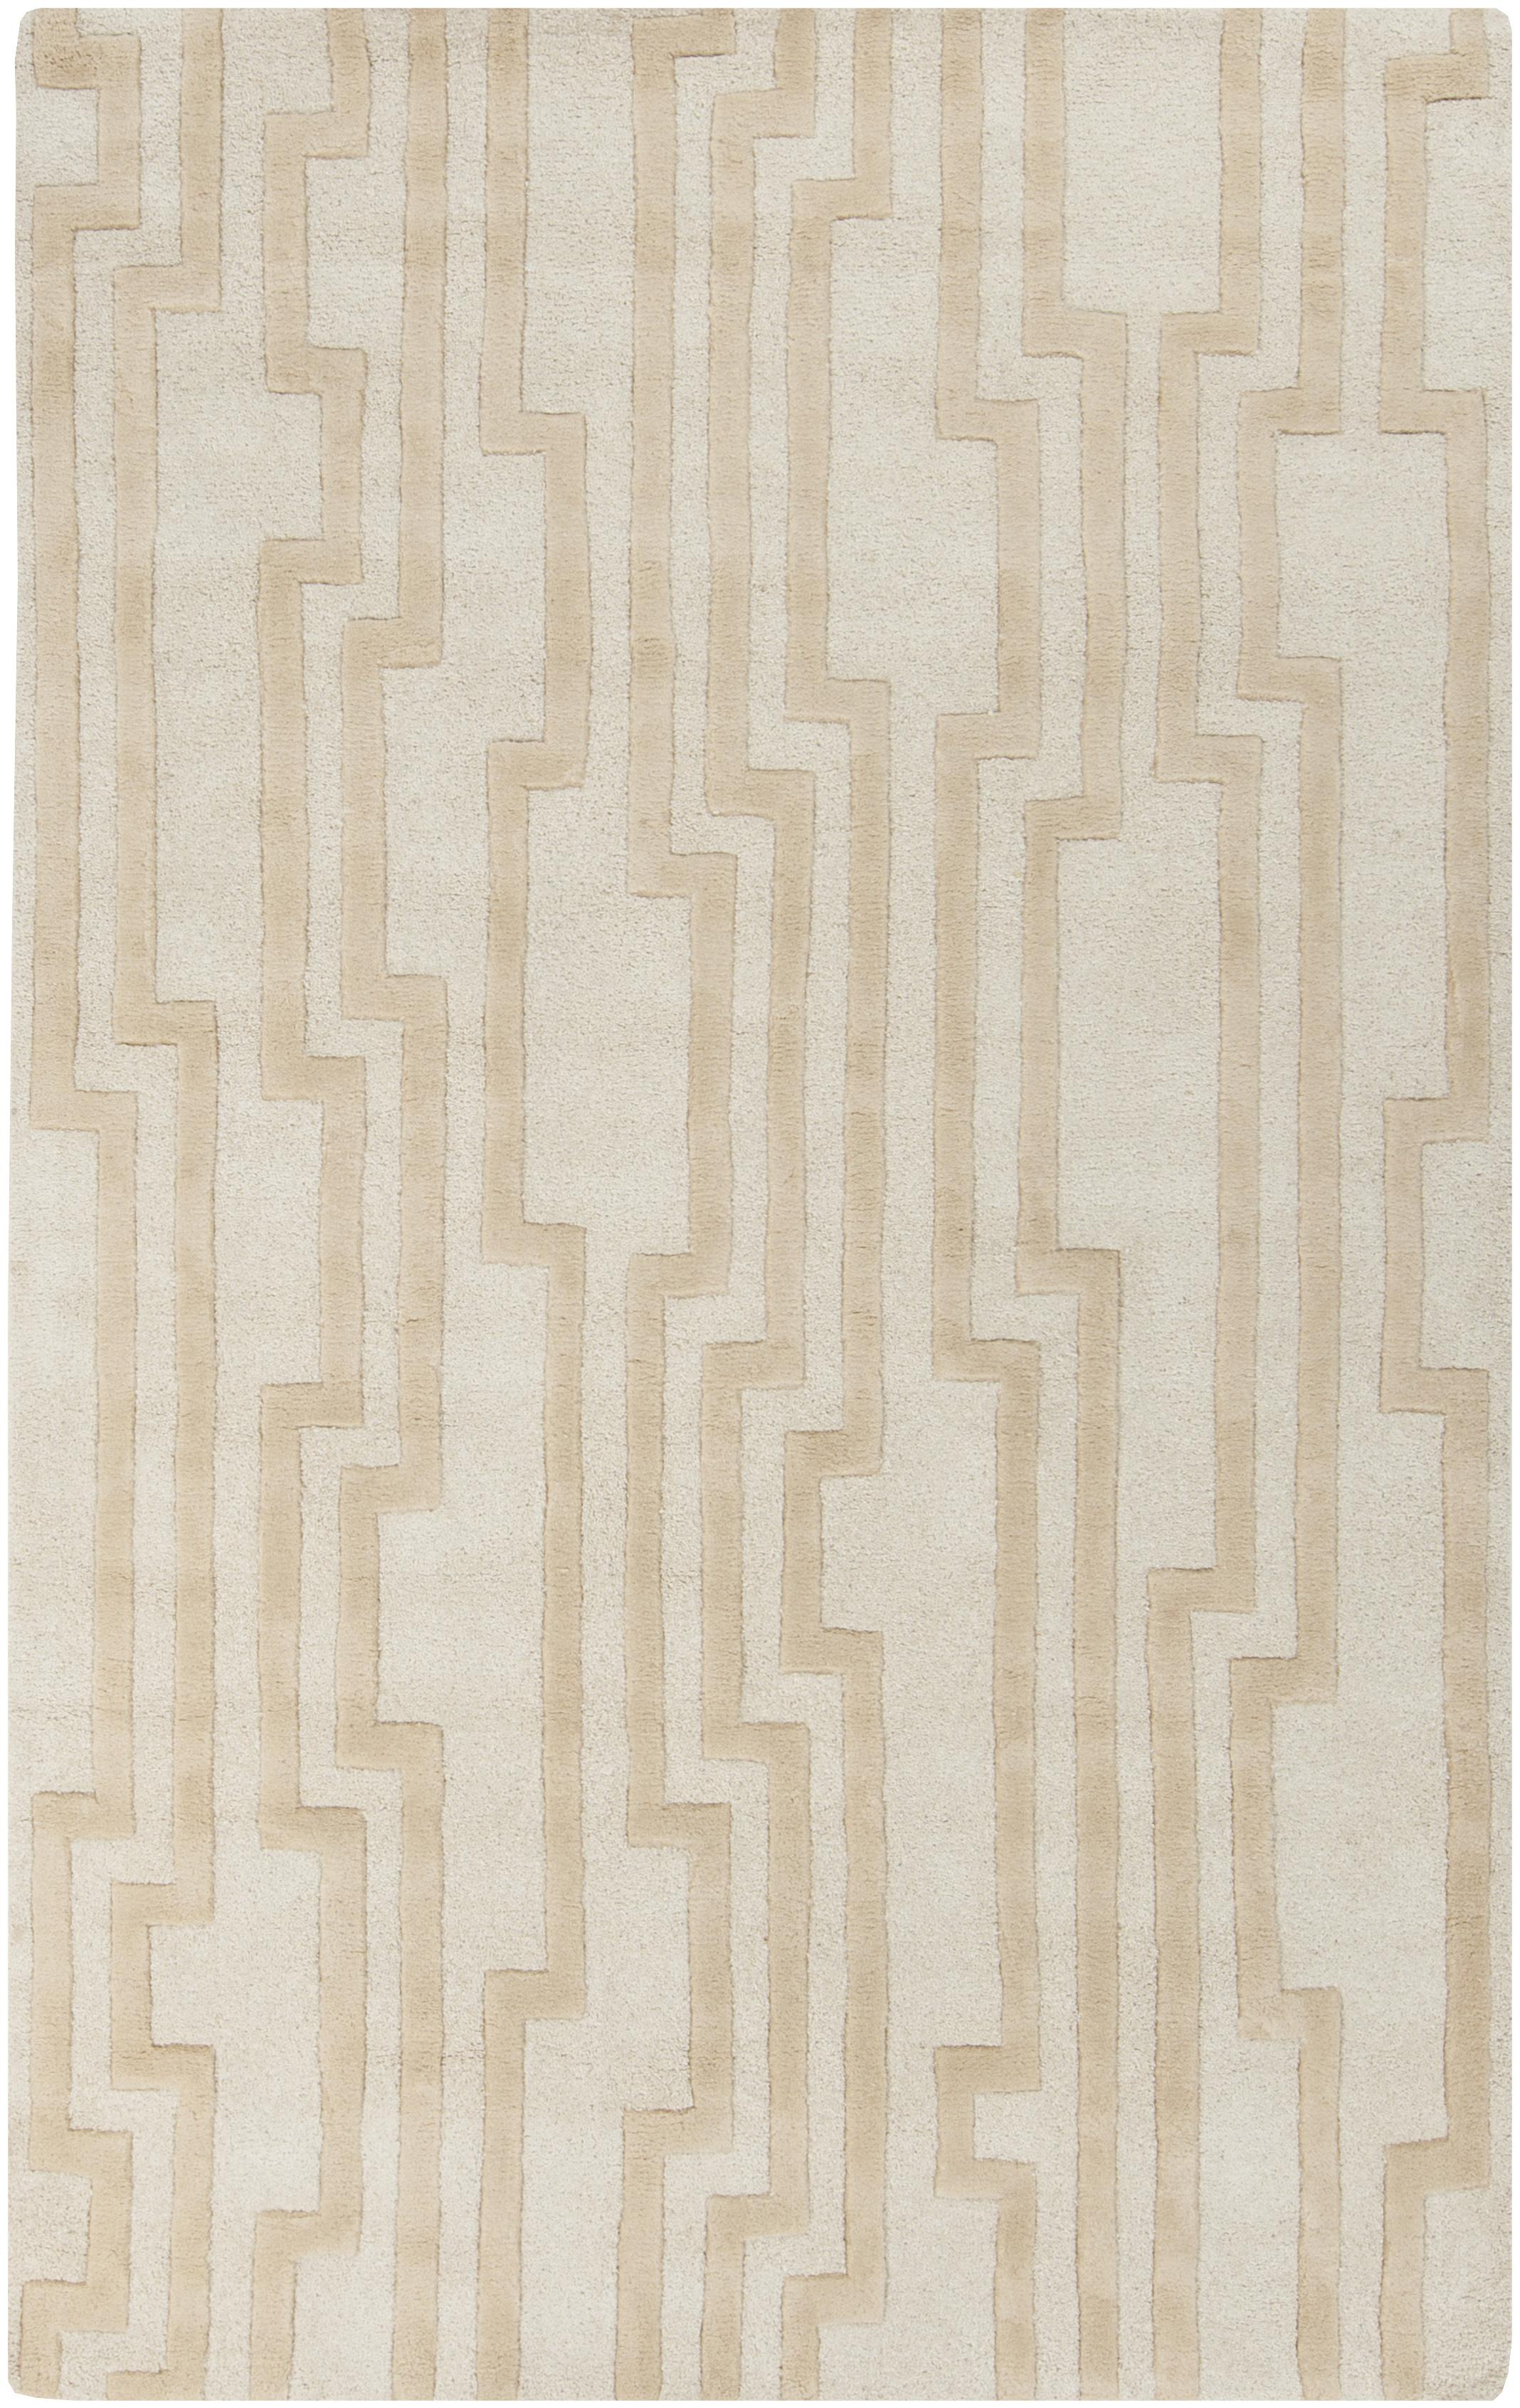 "Surya Modern Classics 3'3"" x 5'3"" - Item Number: CAN2021-3353"